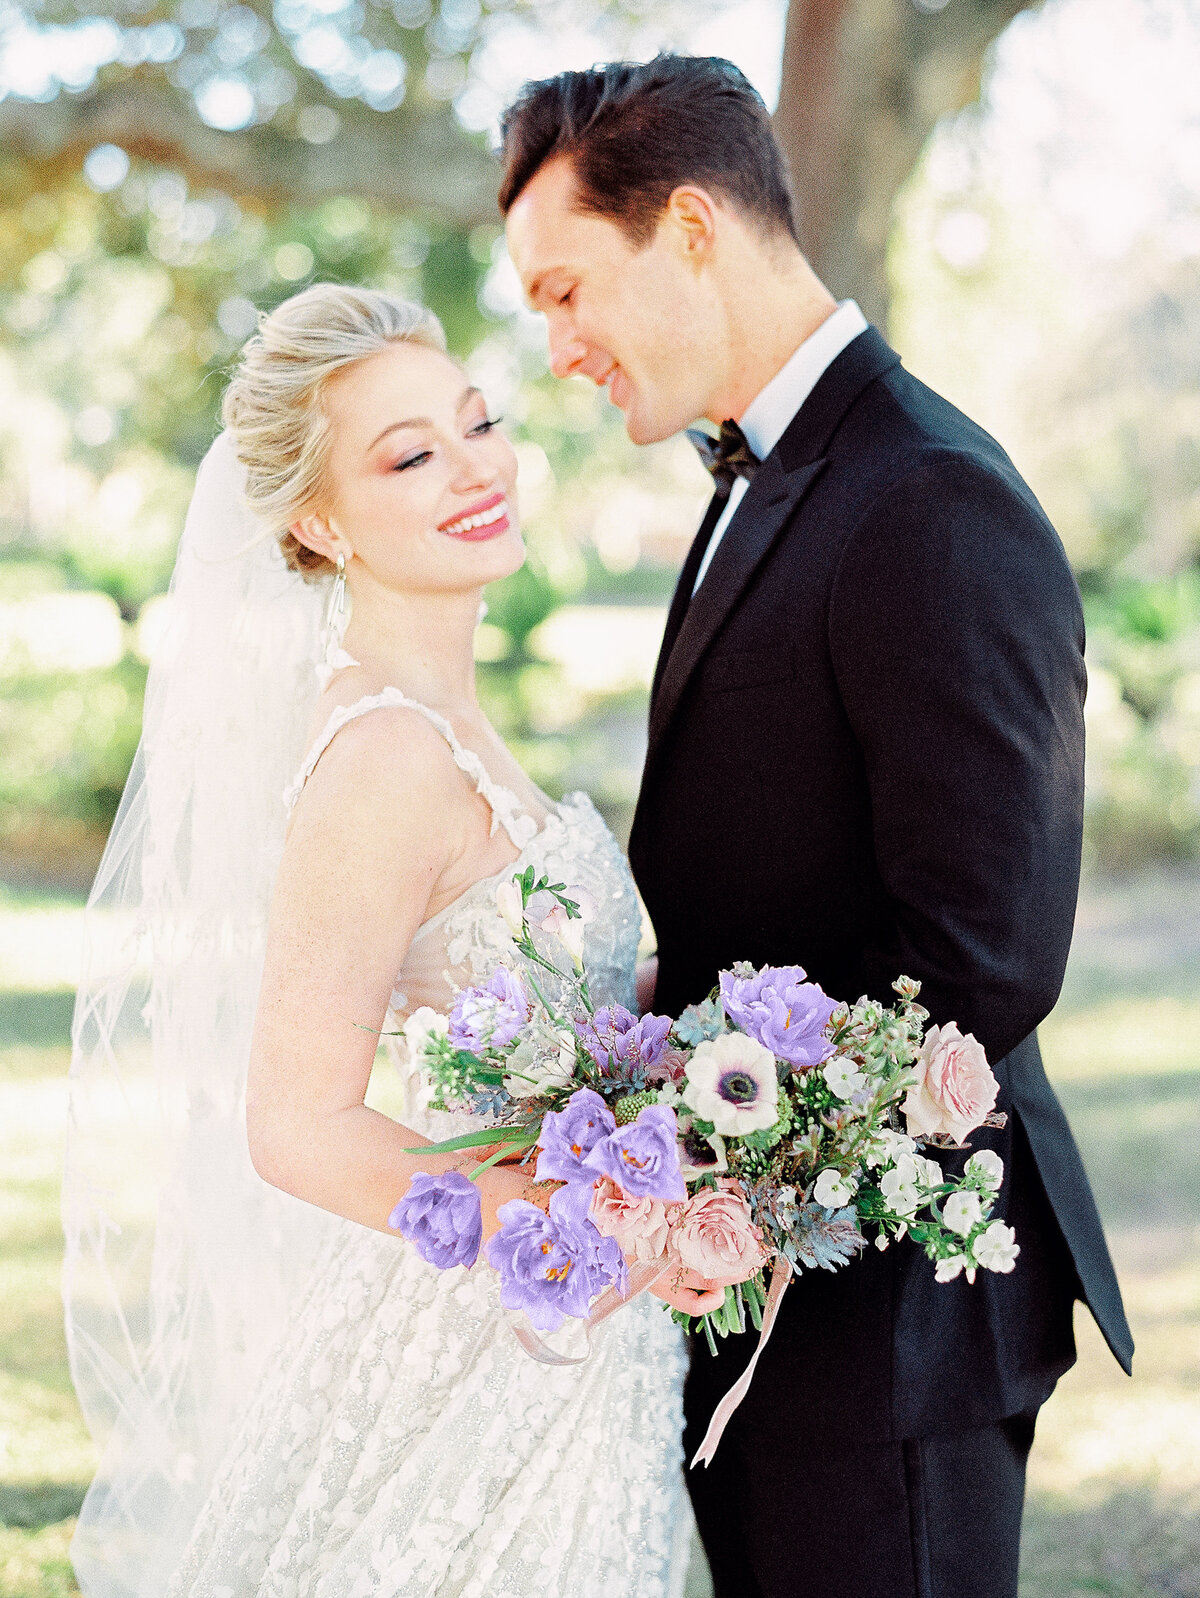 Bride and groom embracing with purple floral bouquet laughing outside wedding Charleston